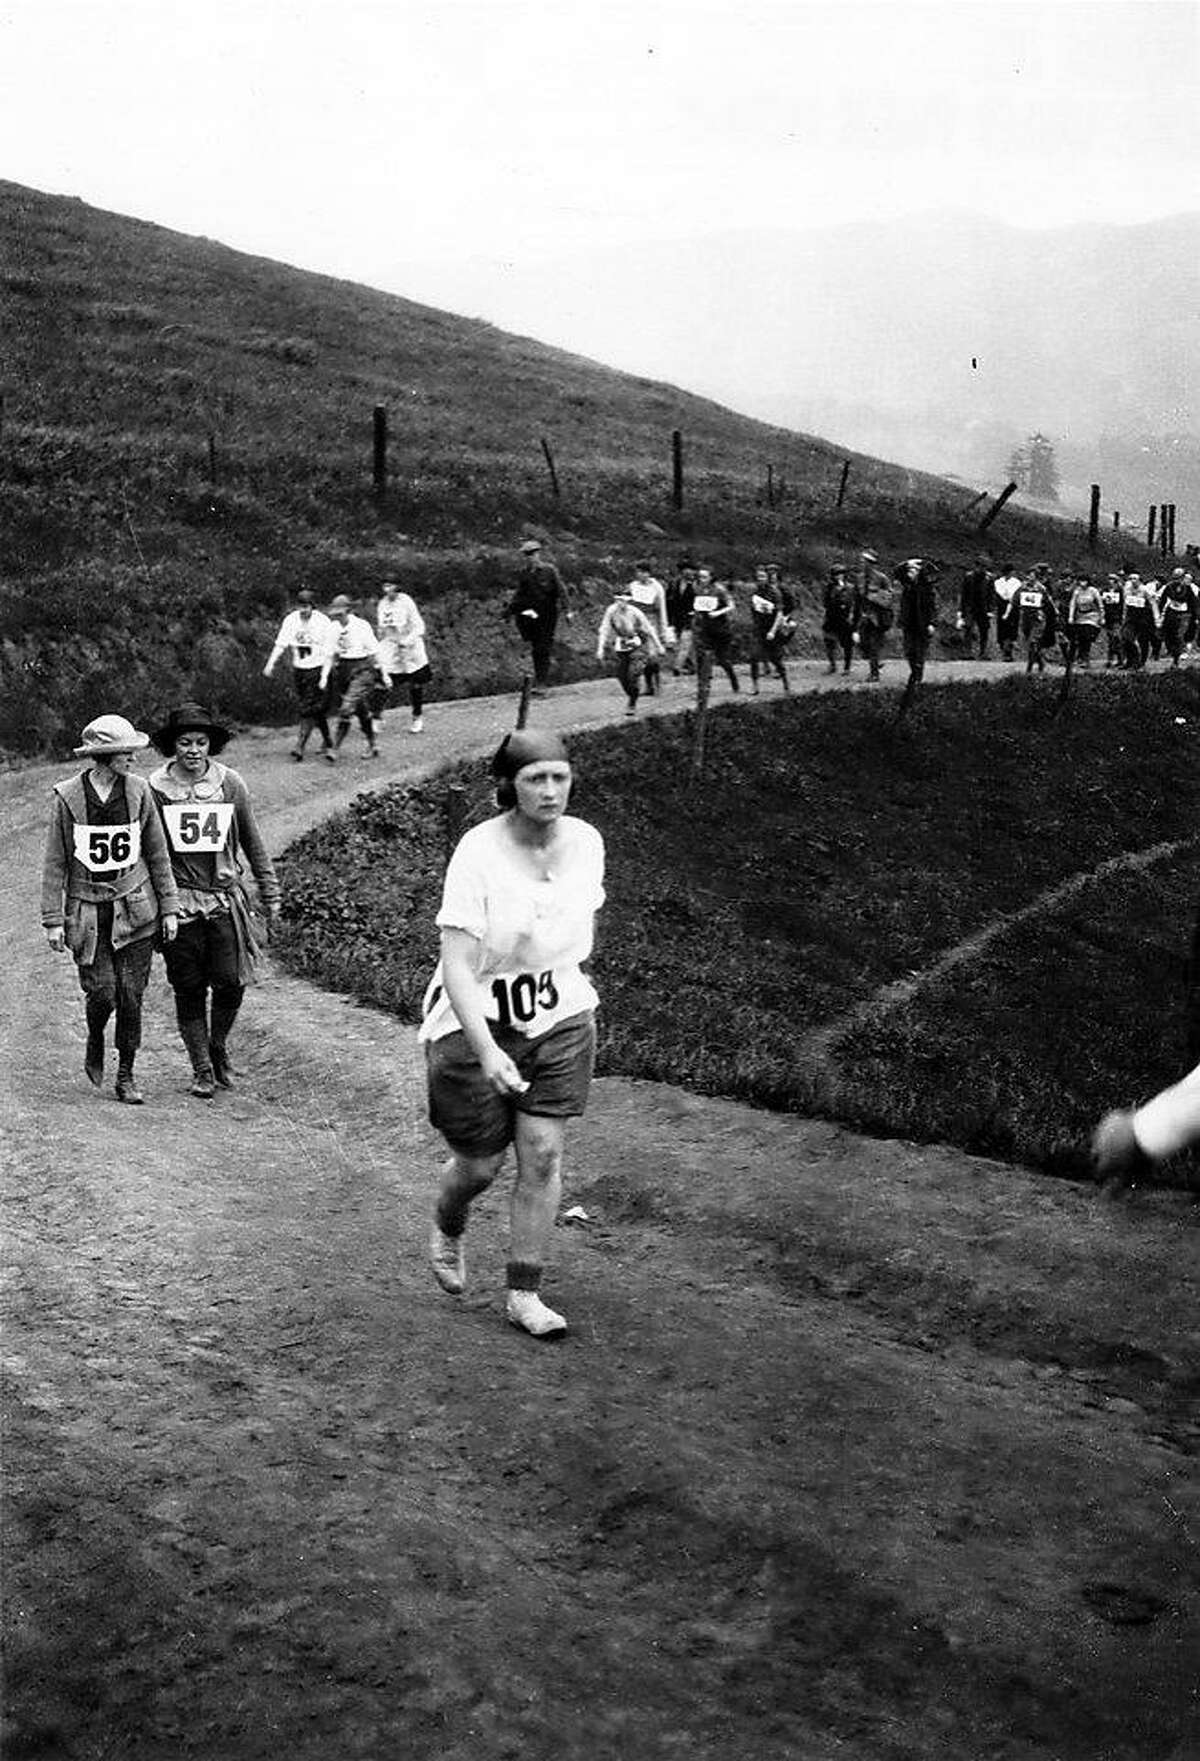 """Photo 1: These runners were among the first women to participate in the Dipsea women's """"hike,"""" which was held between 1918 and 1922.Photo 2: Women make their way along the Dipsea course.Photo 3: Edith Hickman of San Francisco was the winner of the first women's Dipsea race on April 21, 1918."""